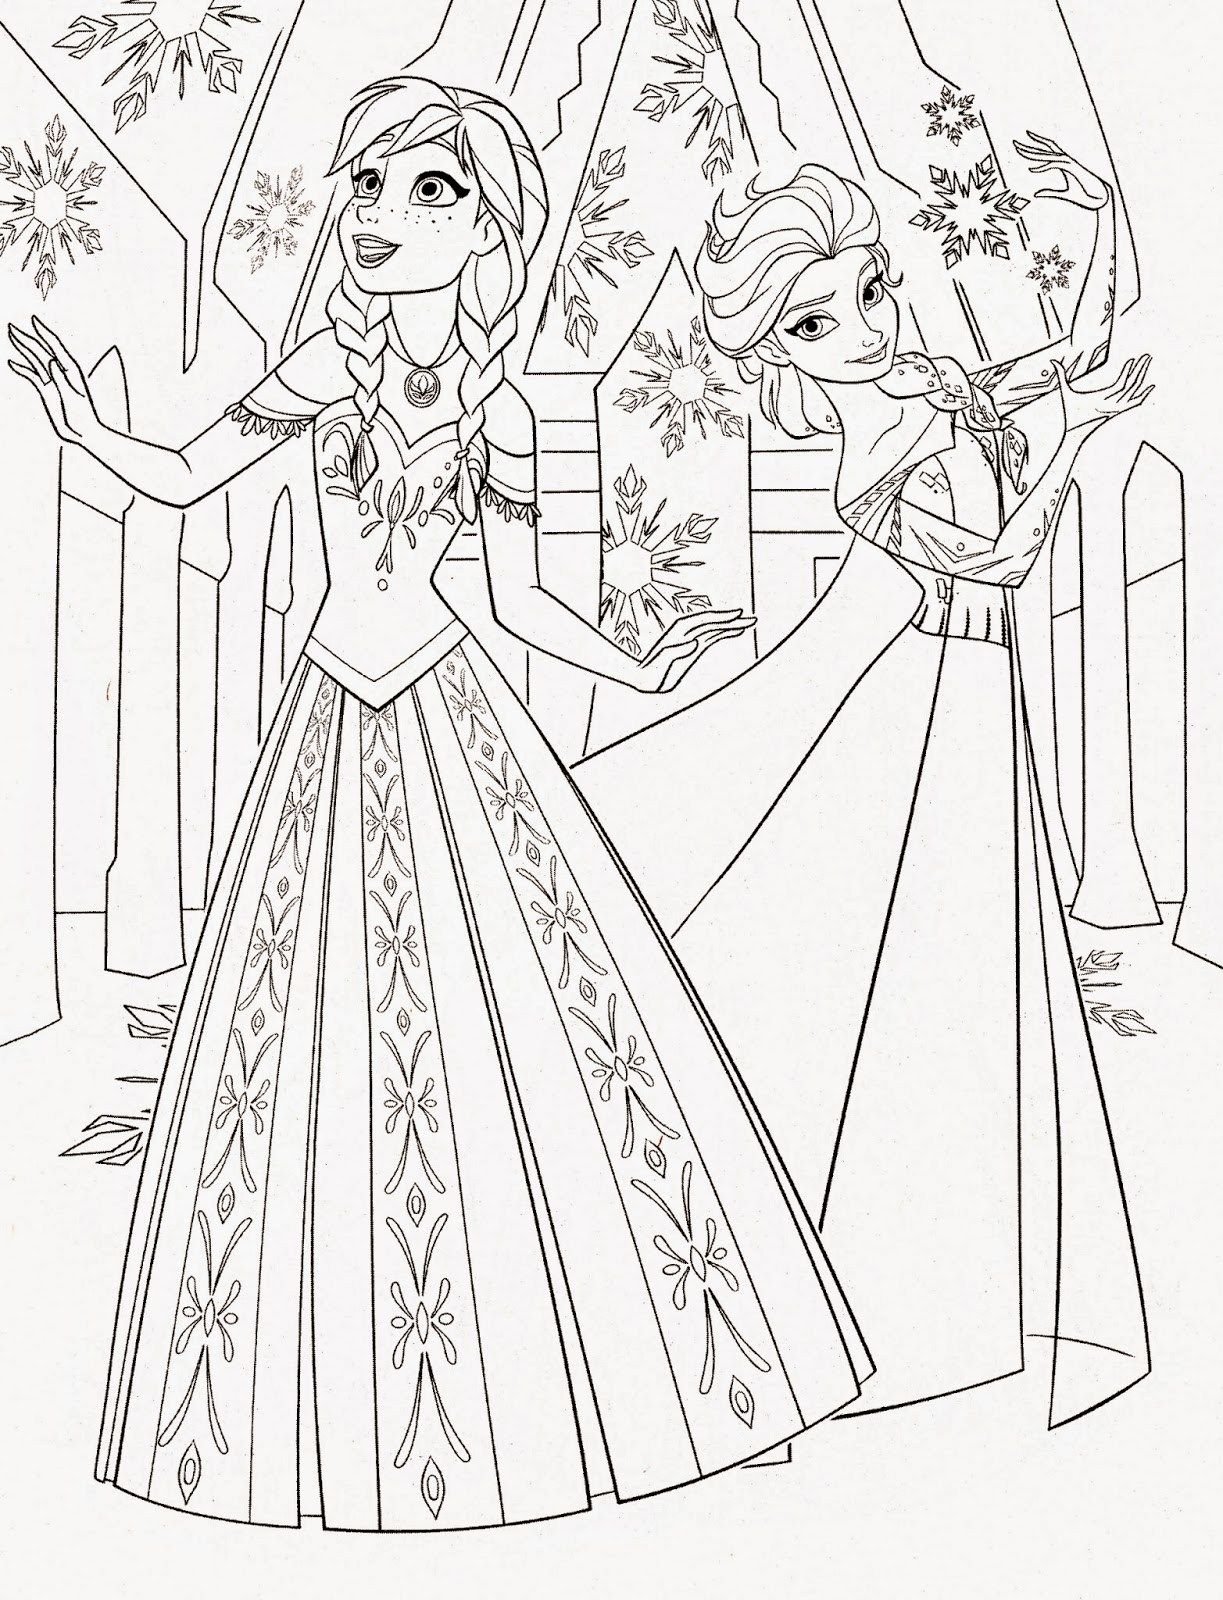 Elsa Frozen Coloring Pages Only Coloring Pages Disney Princess Coloring Pages Frozen Coloring Elsa Coloring Pages